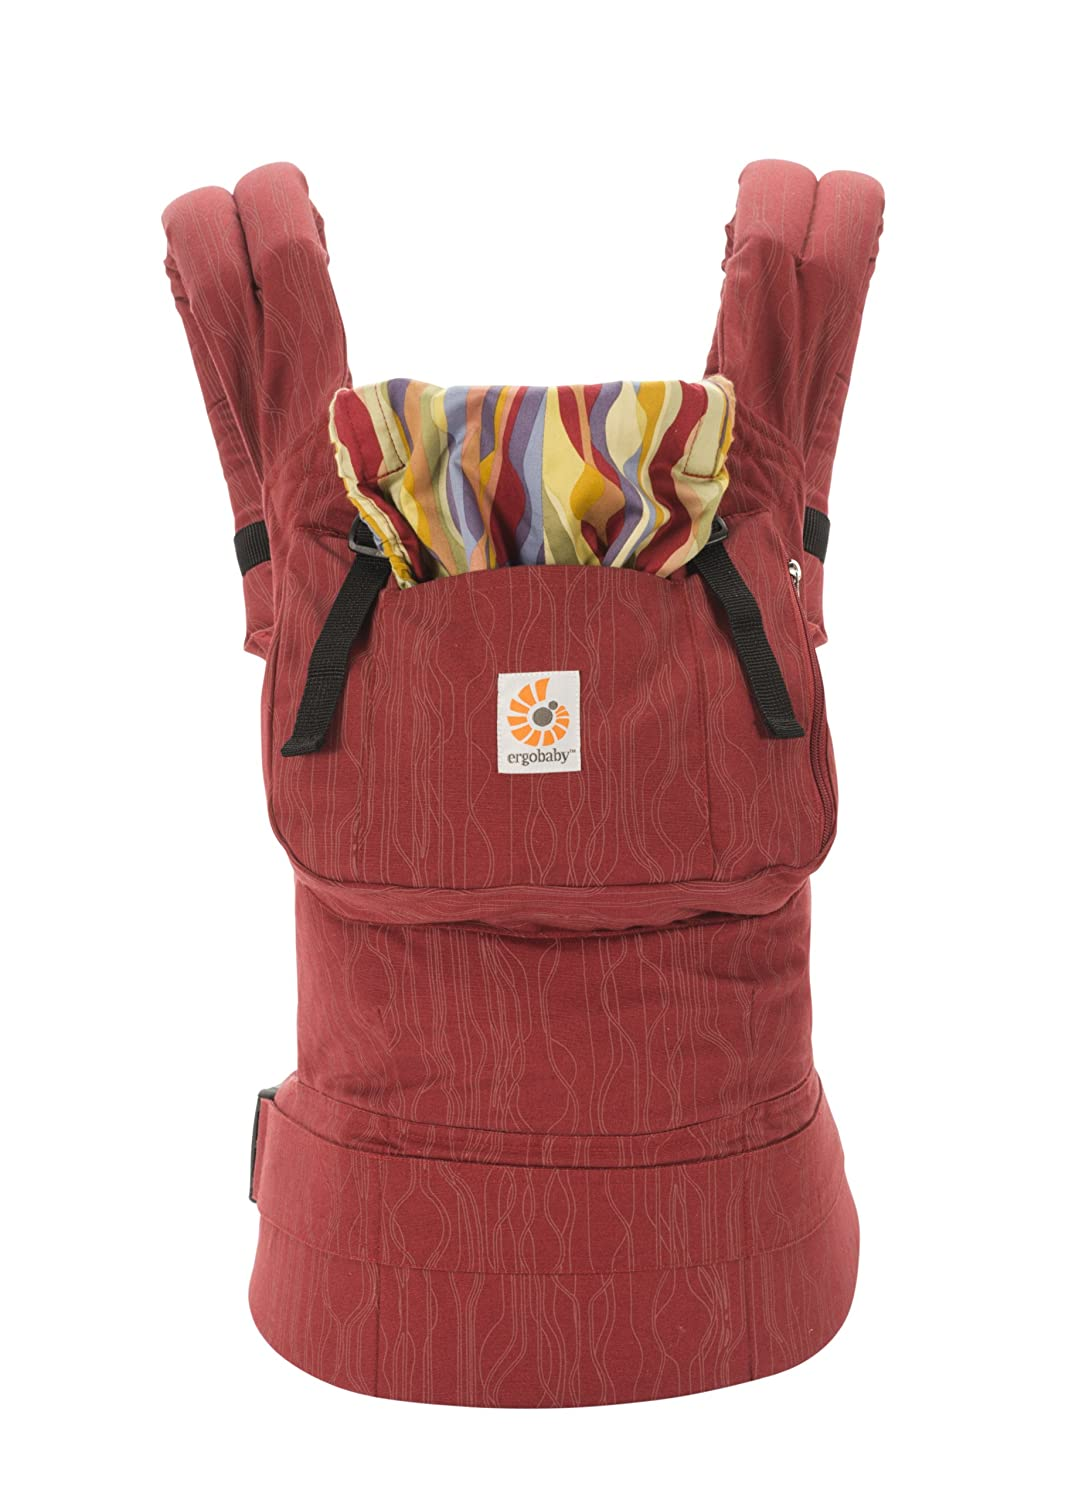 Ergobaby Original Baby Carrier, Sangria Discontinued by Manufacturer